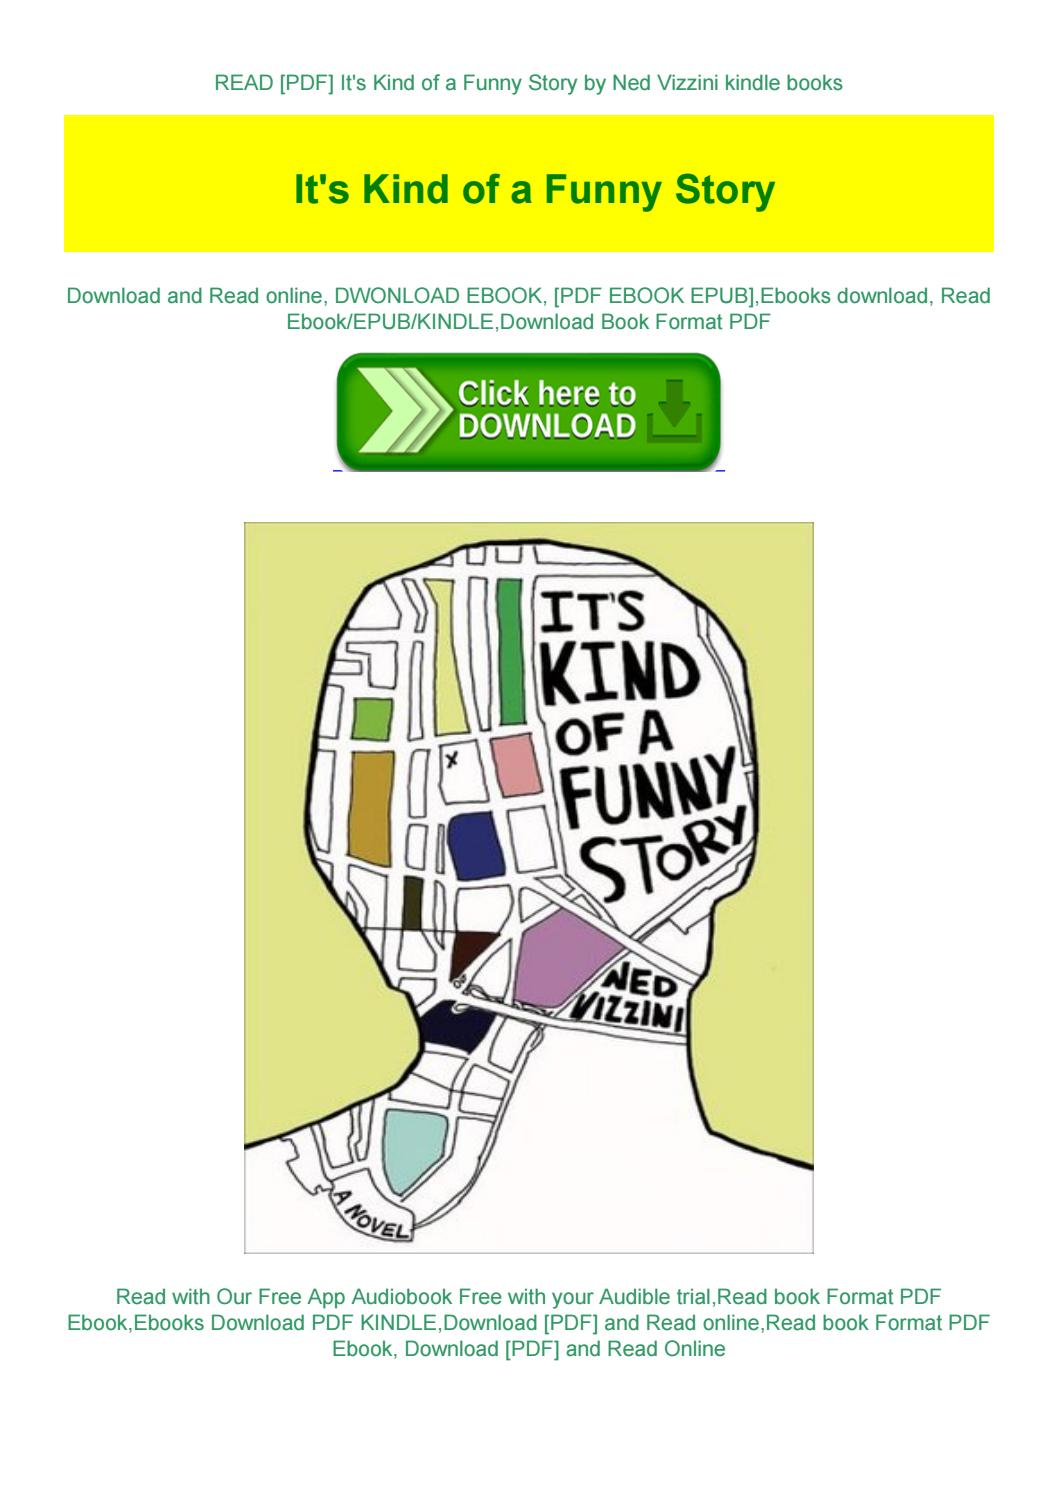 It's Kind Of A Funny Story Book Pdf Download : funny, story, download, [PDF], Funny, Story, Vizzini, Kindle, Books, TimothyMillerasa, Issuu